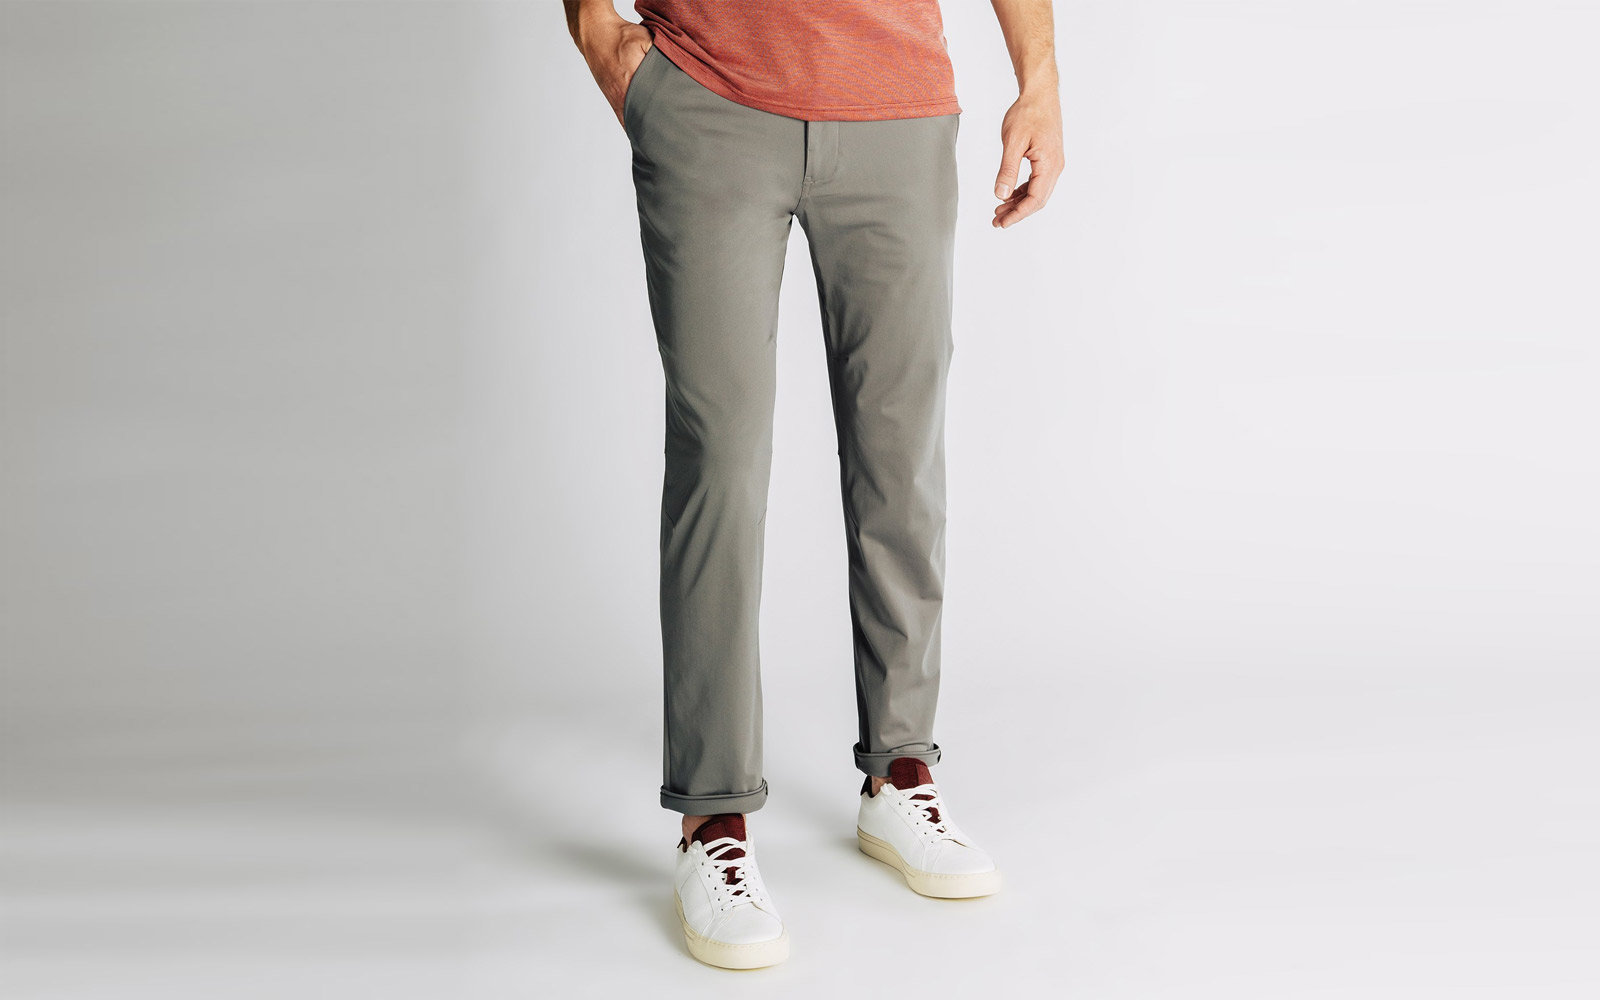 dc805828b533 The Best Men s Travel Pants for Every Type of Trip